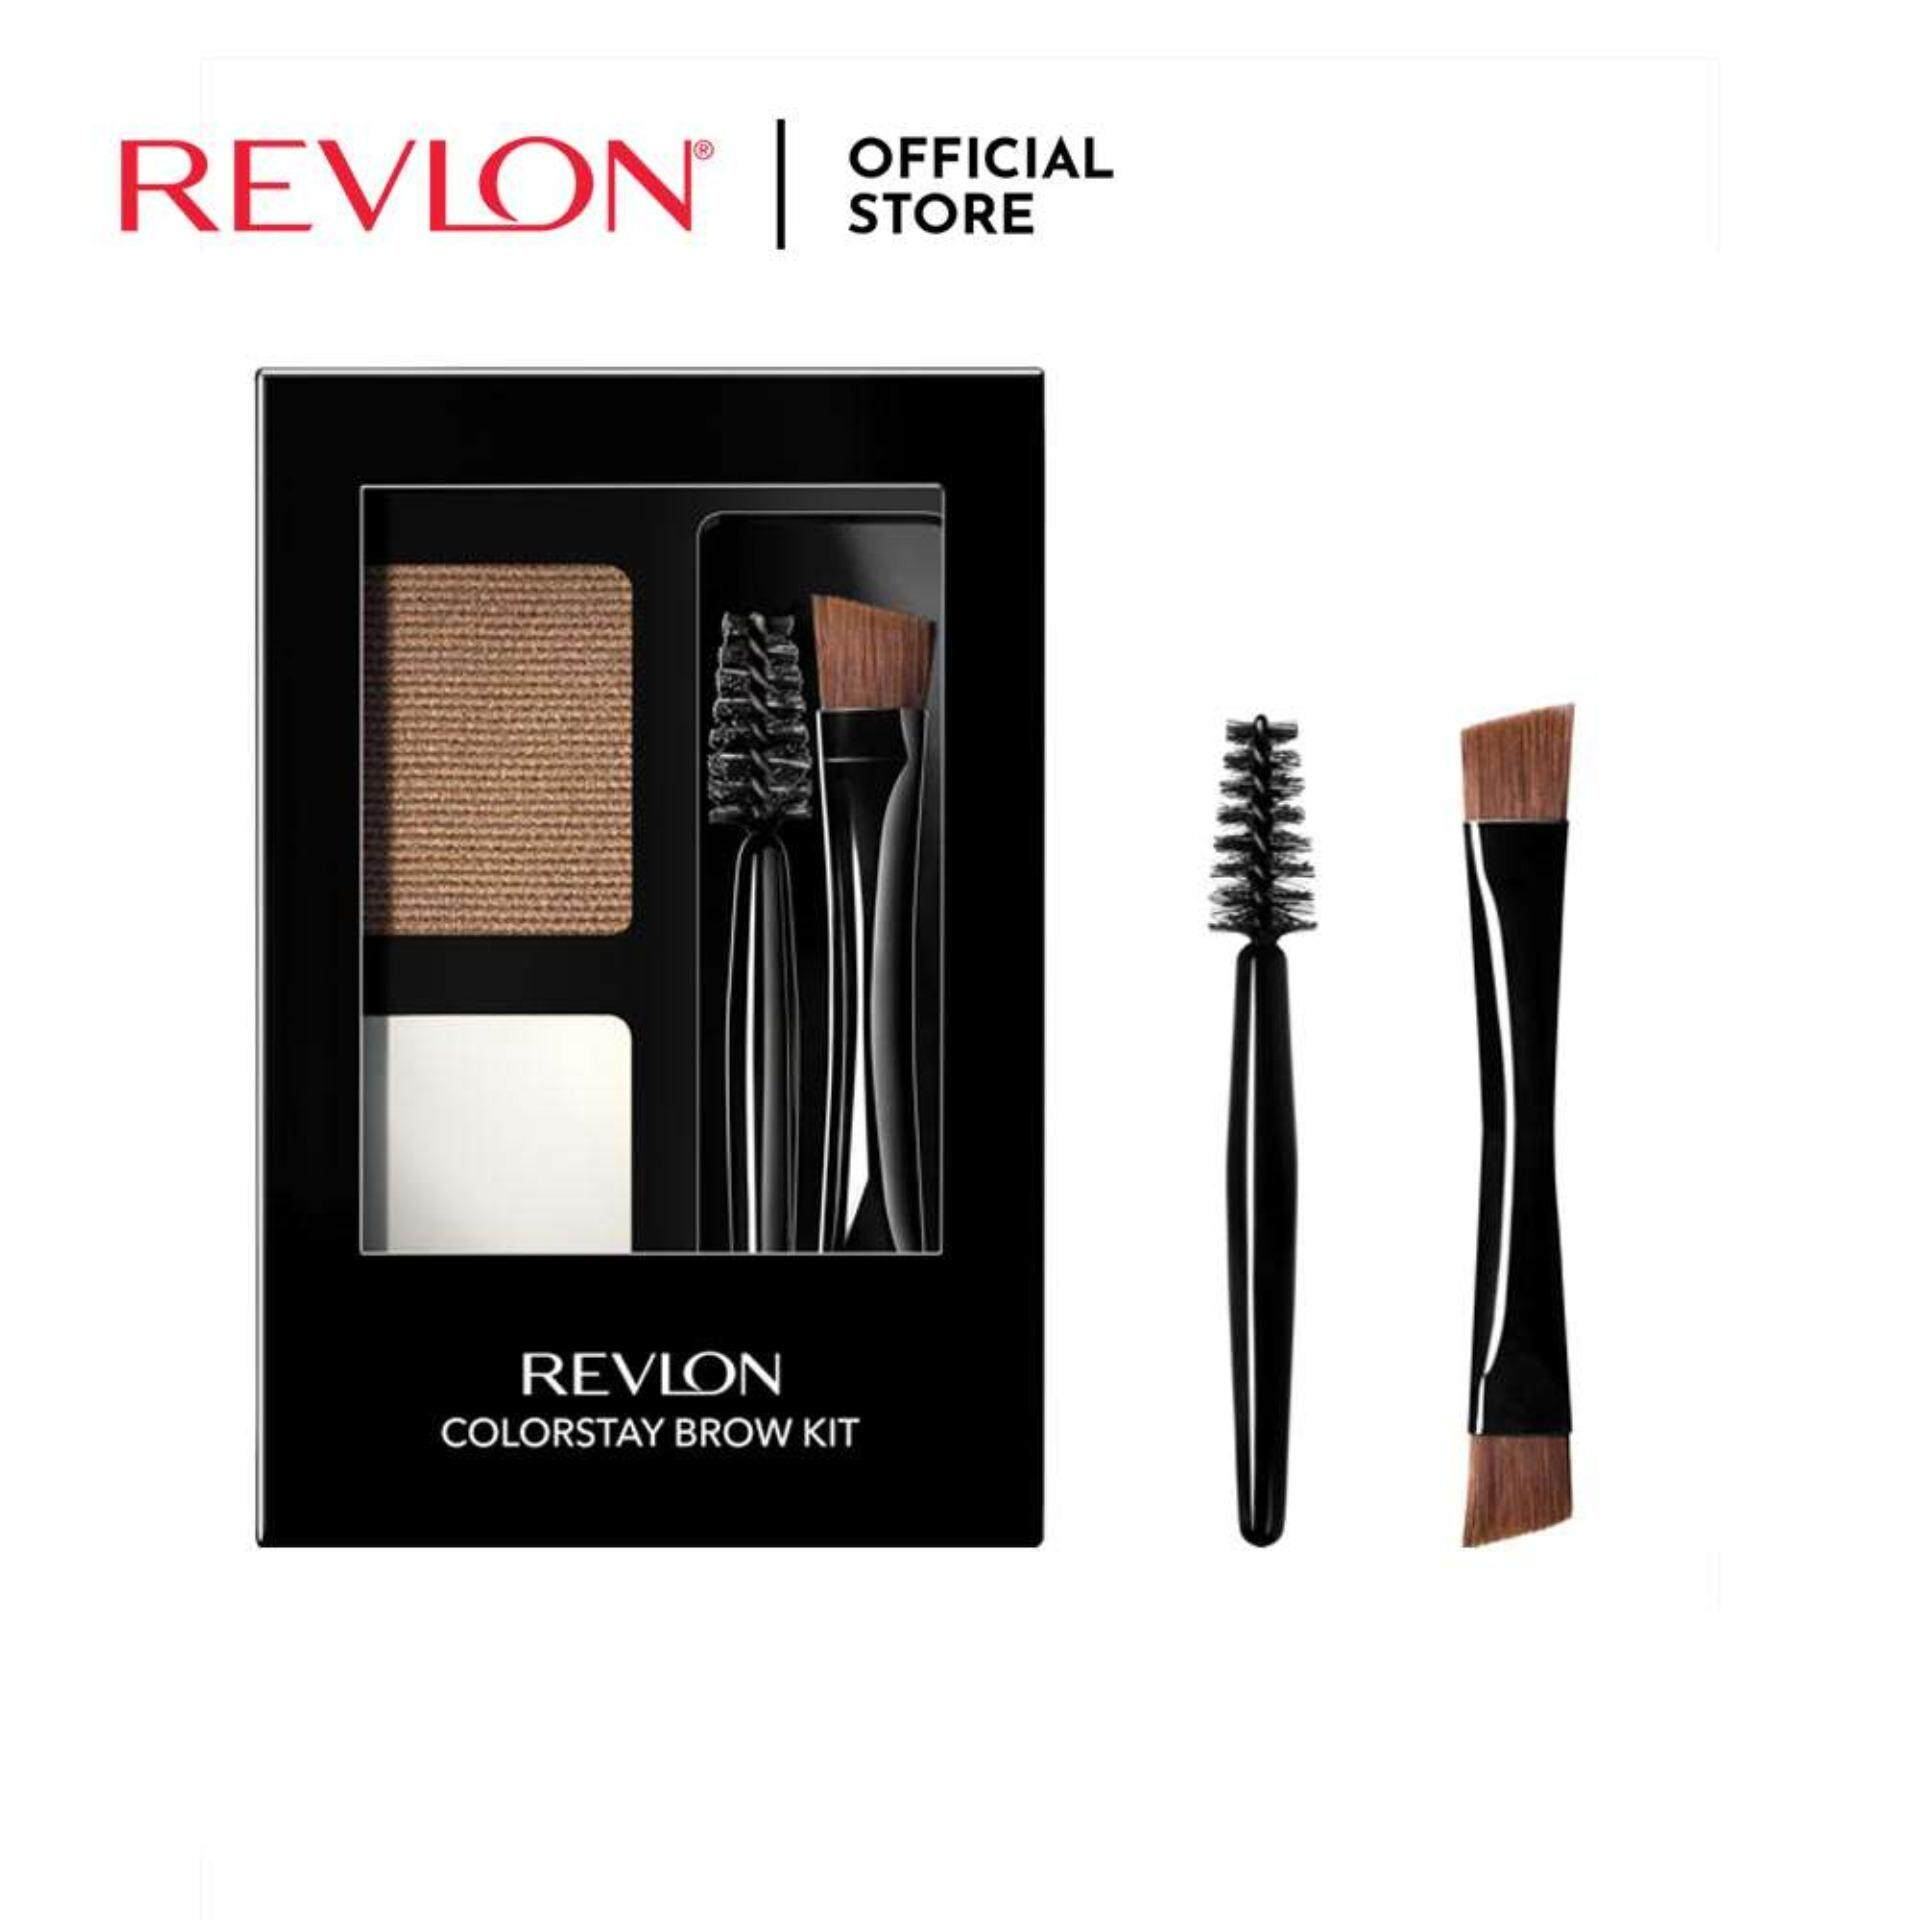 Revlon Colorstay Brow Kit -Blonde 105